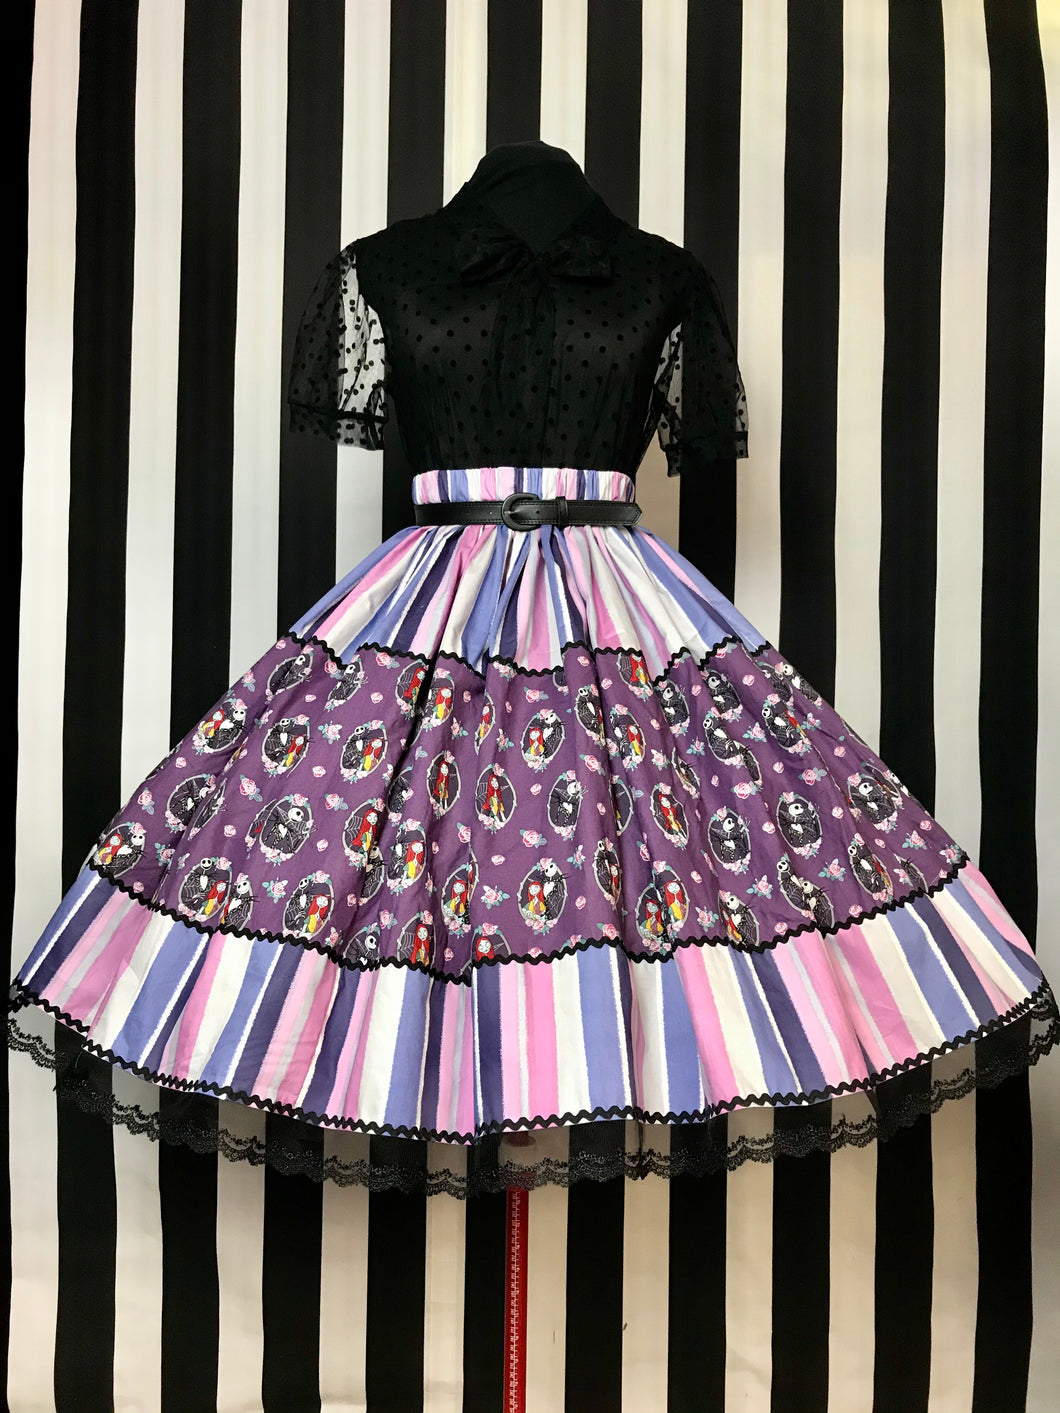 Jack and Sally ornate skirt